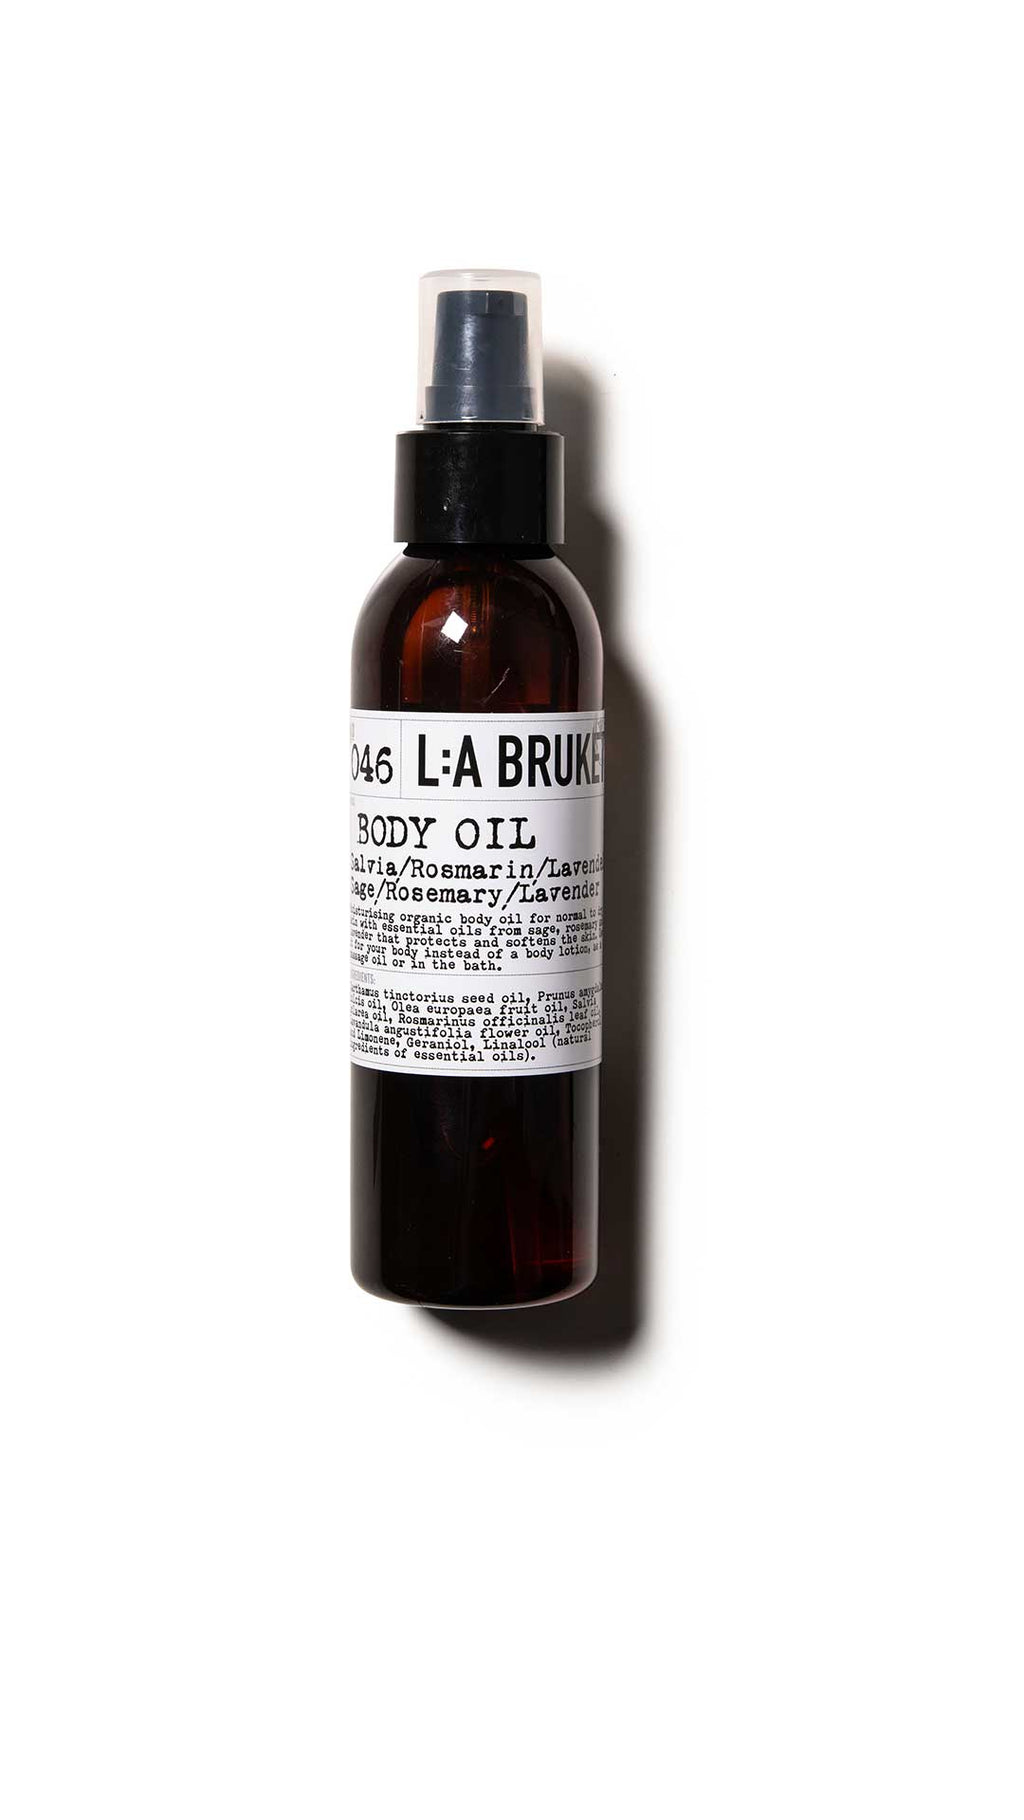 046 BODY OIL SAGE/ROSEMARY/LAVENDER - LA BRUKET